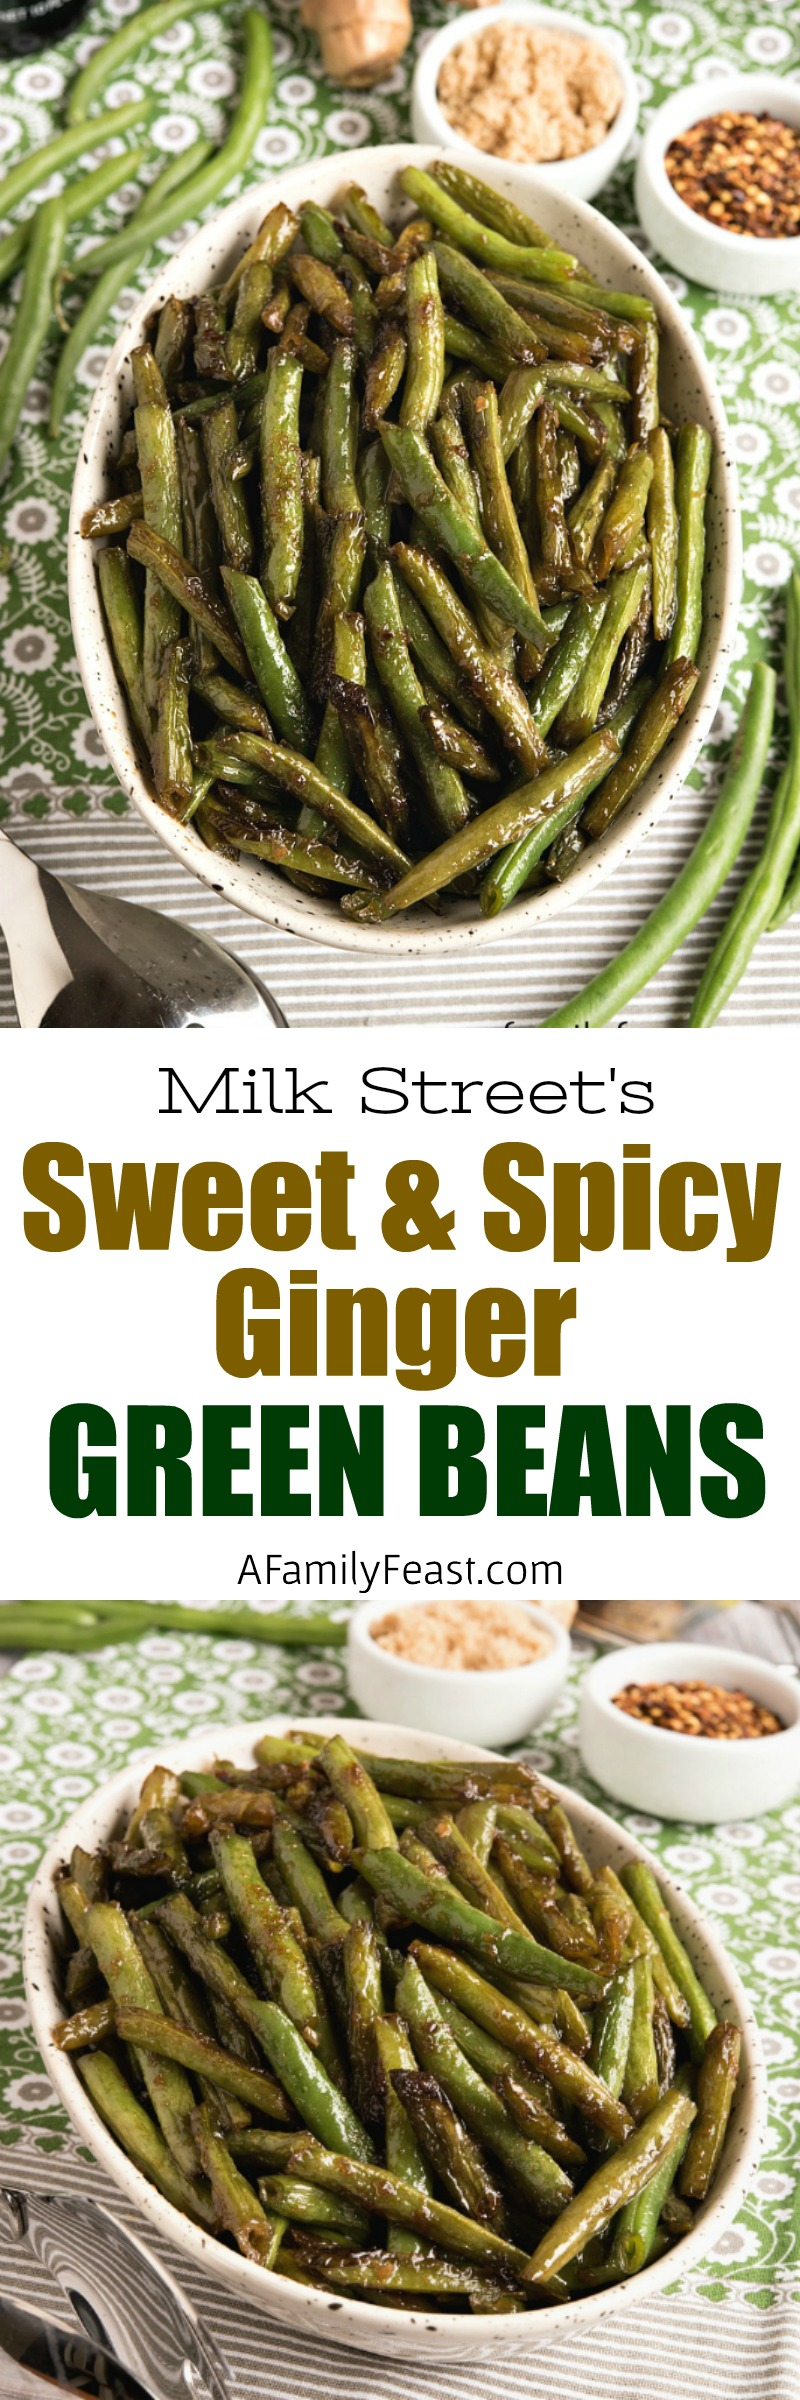 Milk Street Sweet Spicy Ginger Green Beans